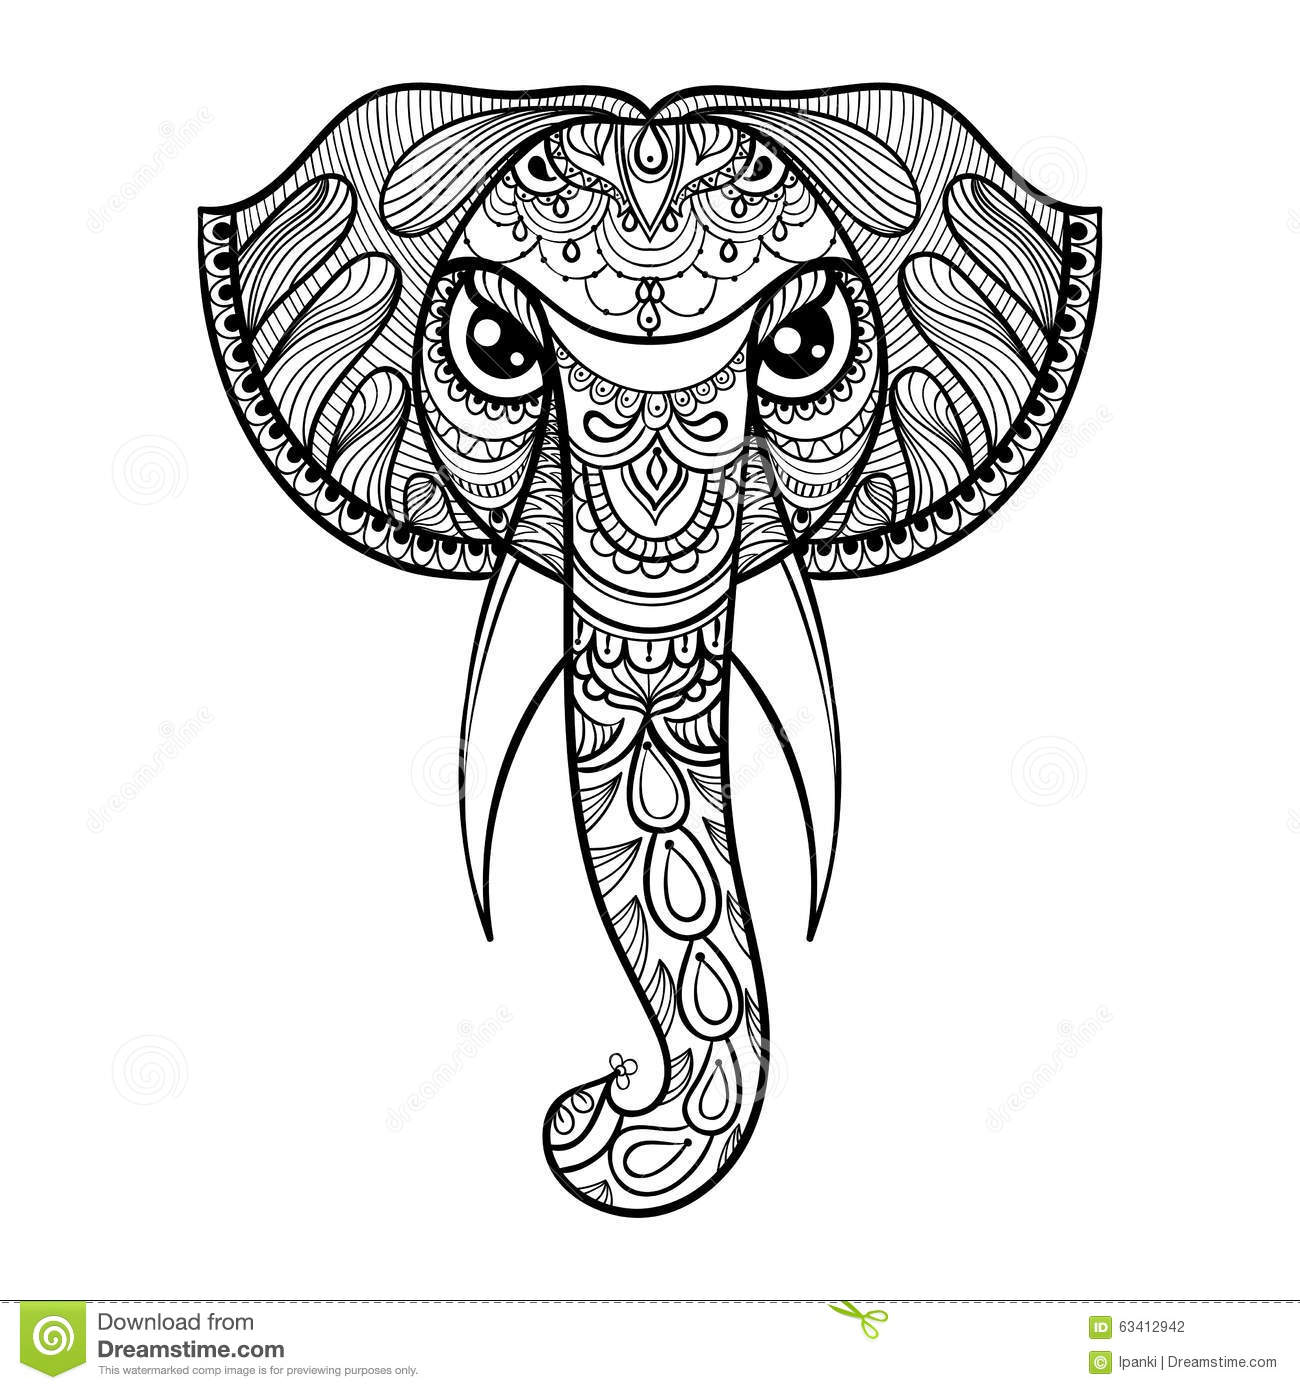 Henna Animals Coloring Pages : Vector ornamental head of elephant ethnic zentangled